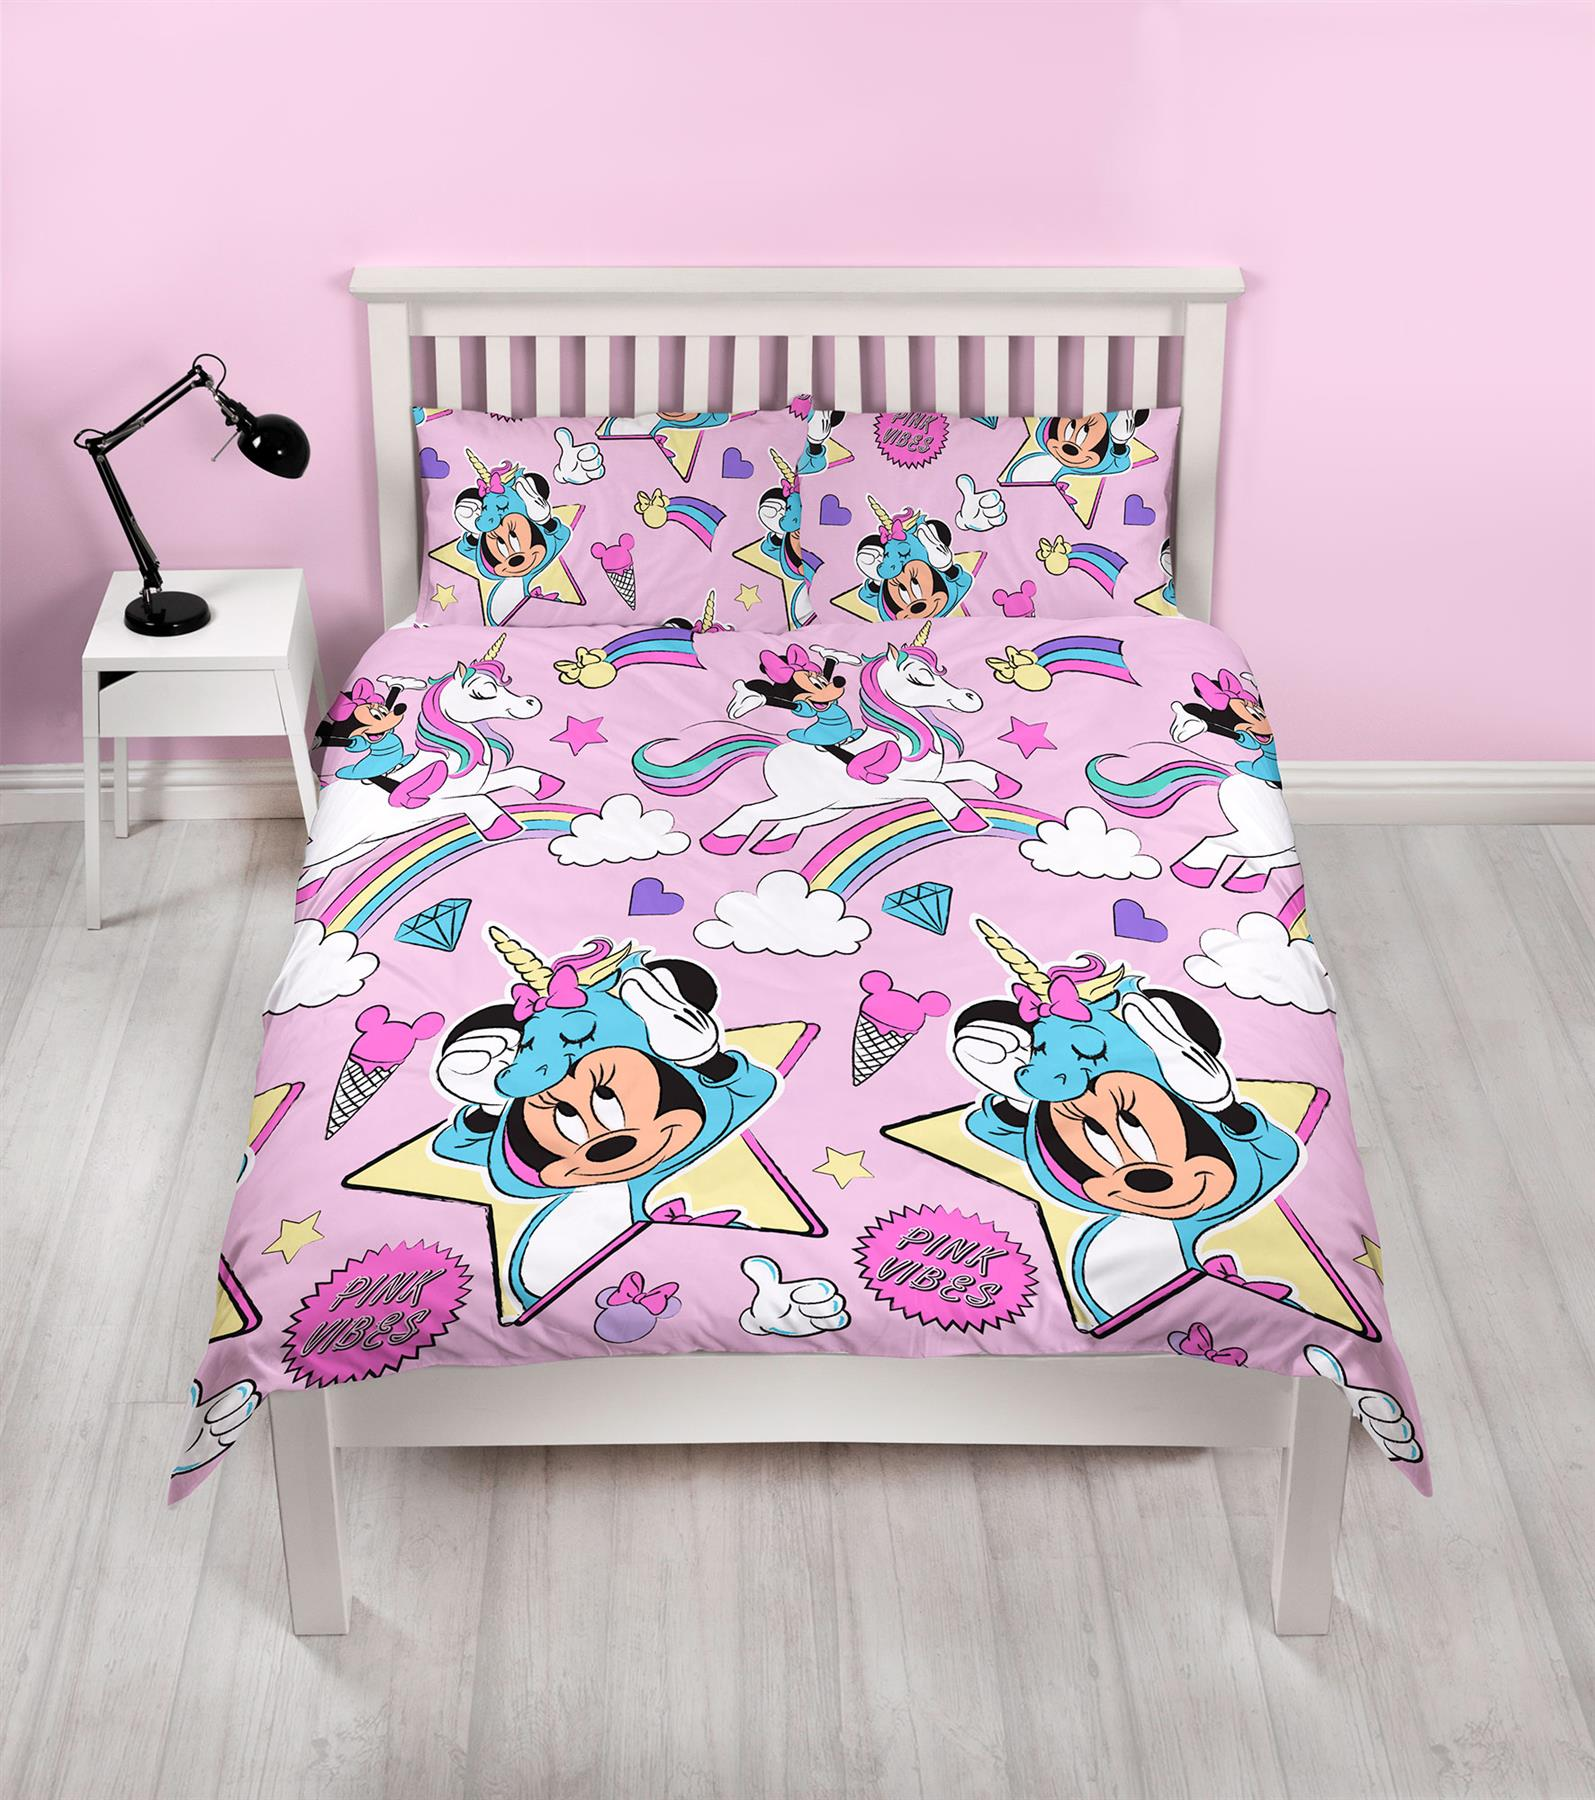 Disney-Mickey-Minnie-mouse-fundas-nordicas-SINGLE-doble-Ropa-De-Cama-Reversible miniatura 44